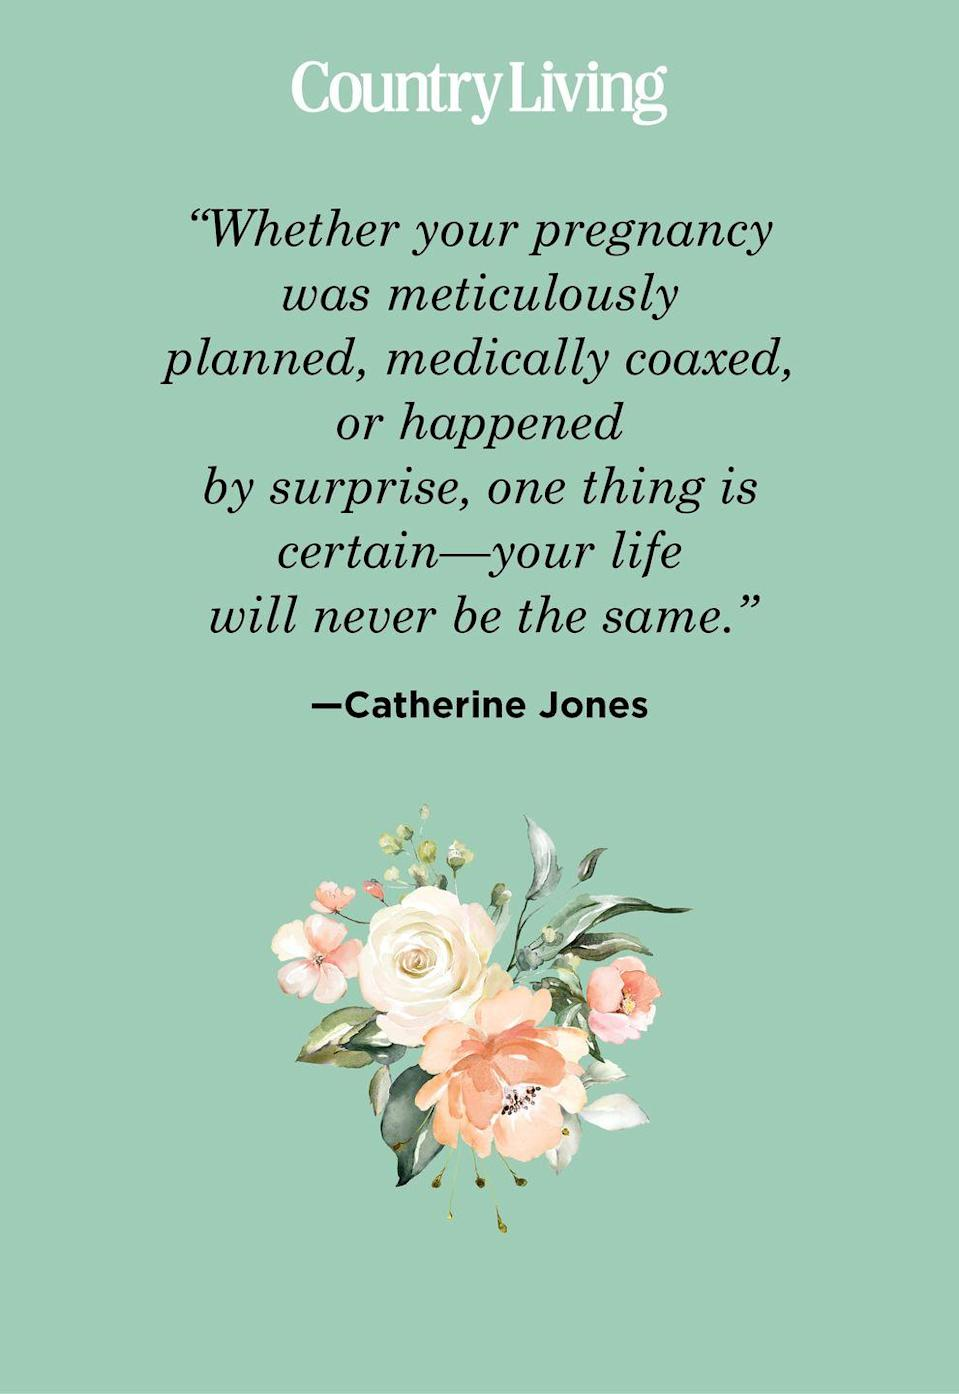 "<p>""Whether your pregnancy was meticulously planned, medically coaxed, or happened by surprise, one thing is certain—your life will never be the same."" </p>"